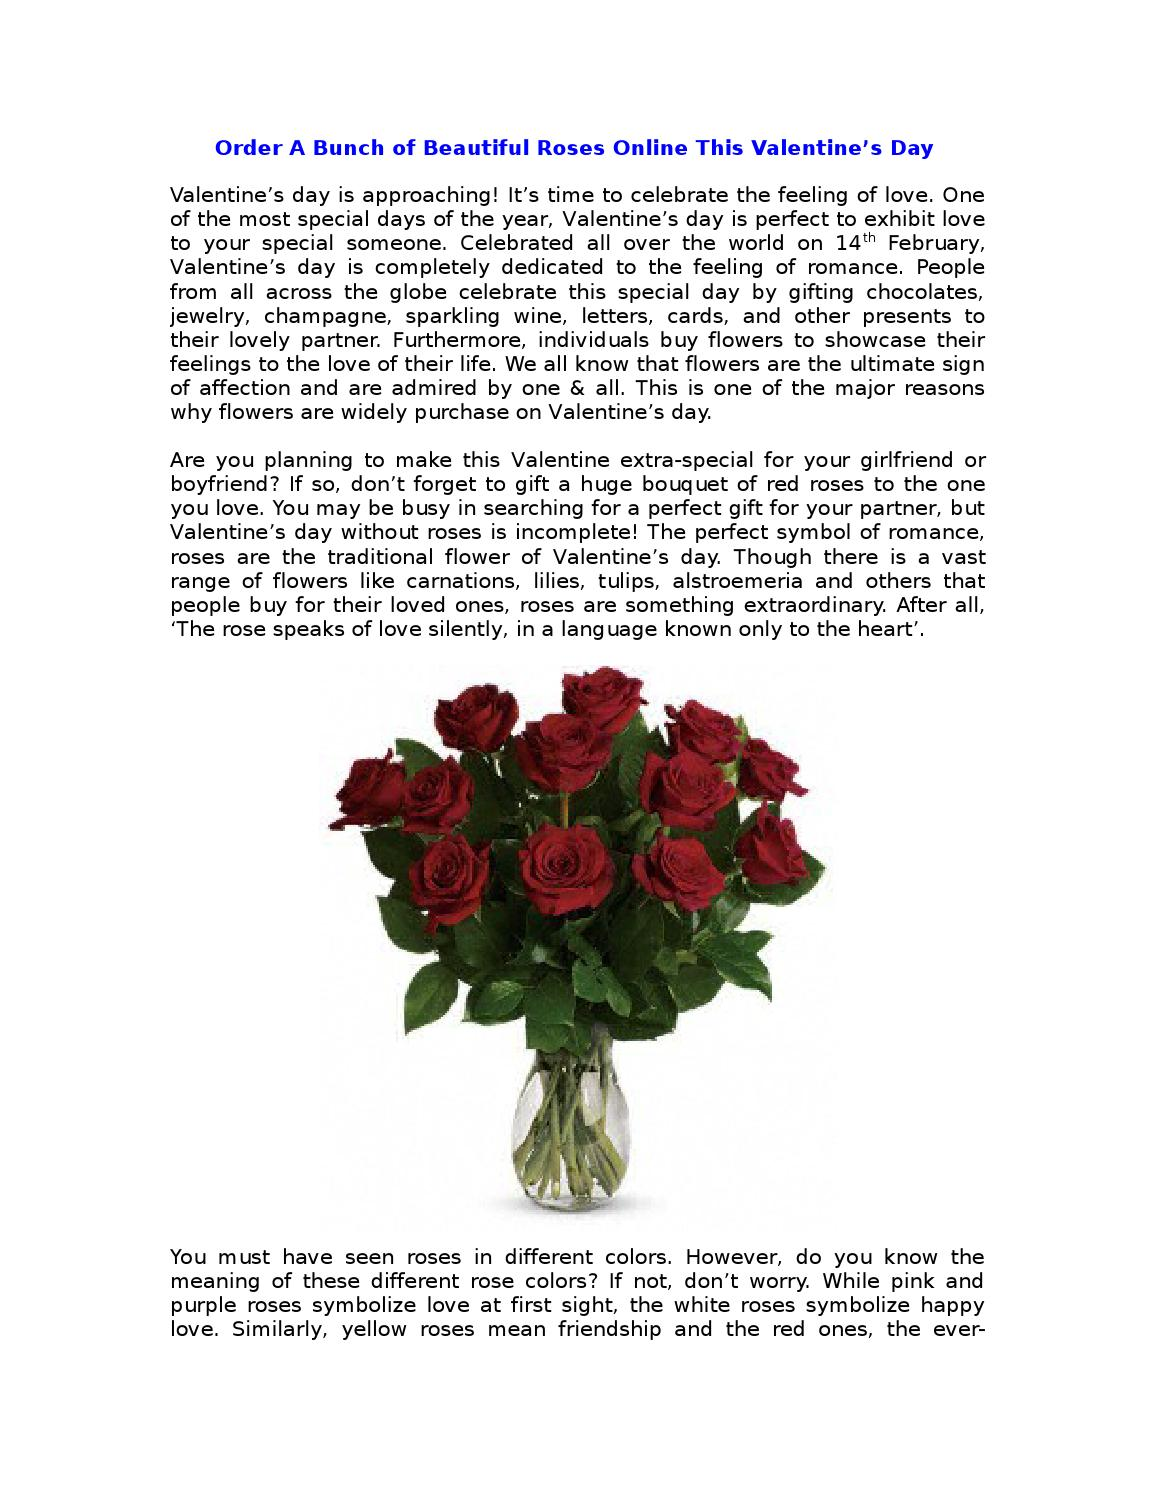 Order a bunch of beautiful roses online this valentines day by order a bunch of beautiful roses online this valentines day by devin mark issuu biocorpaavc Choice Image